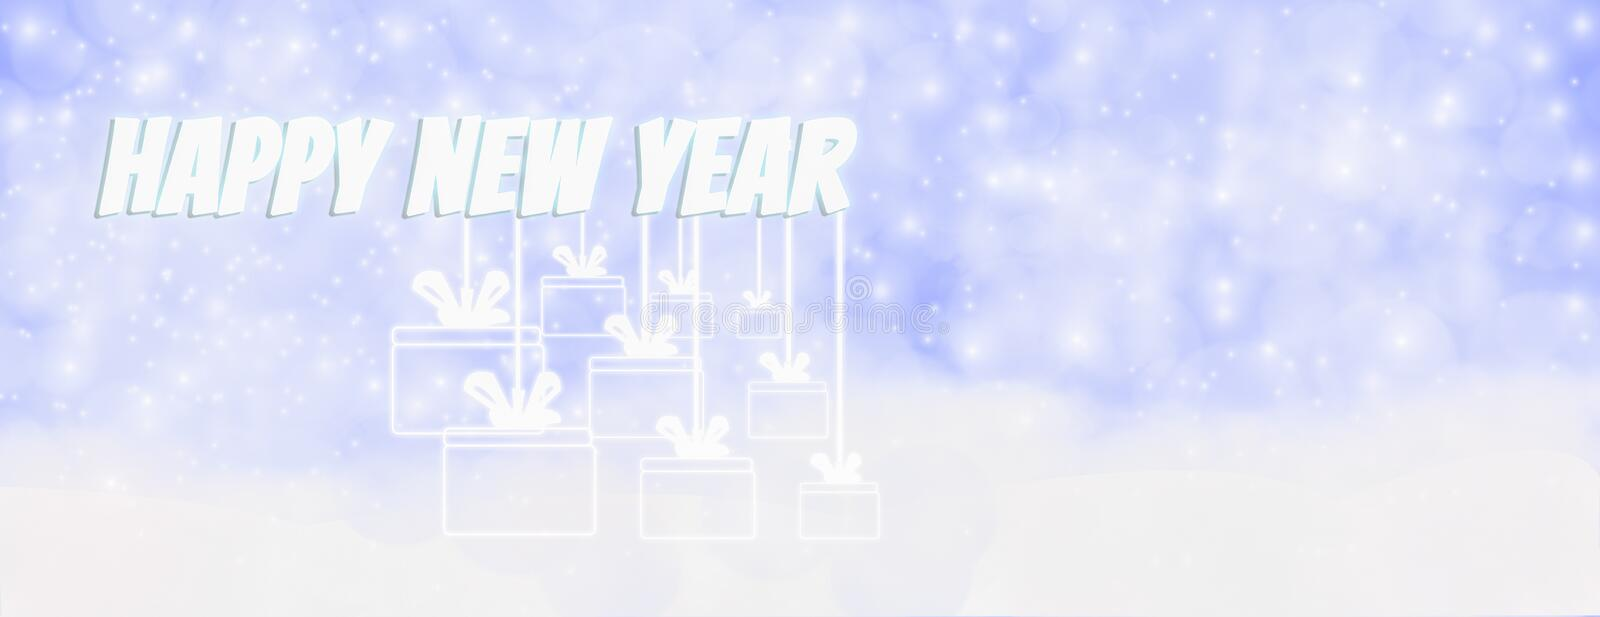 Happy new year winter outdoor with falling snowflakes, and hanging gift box,Panoramic web banner horizontal, with snow background vector illustration